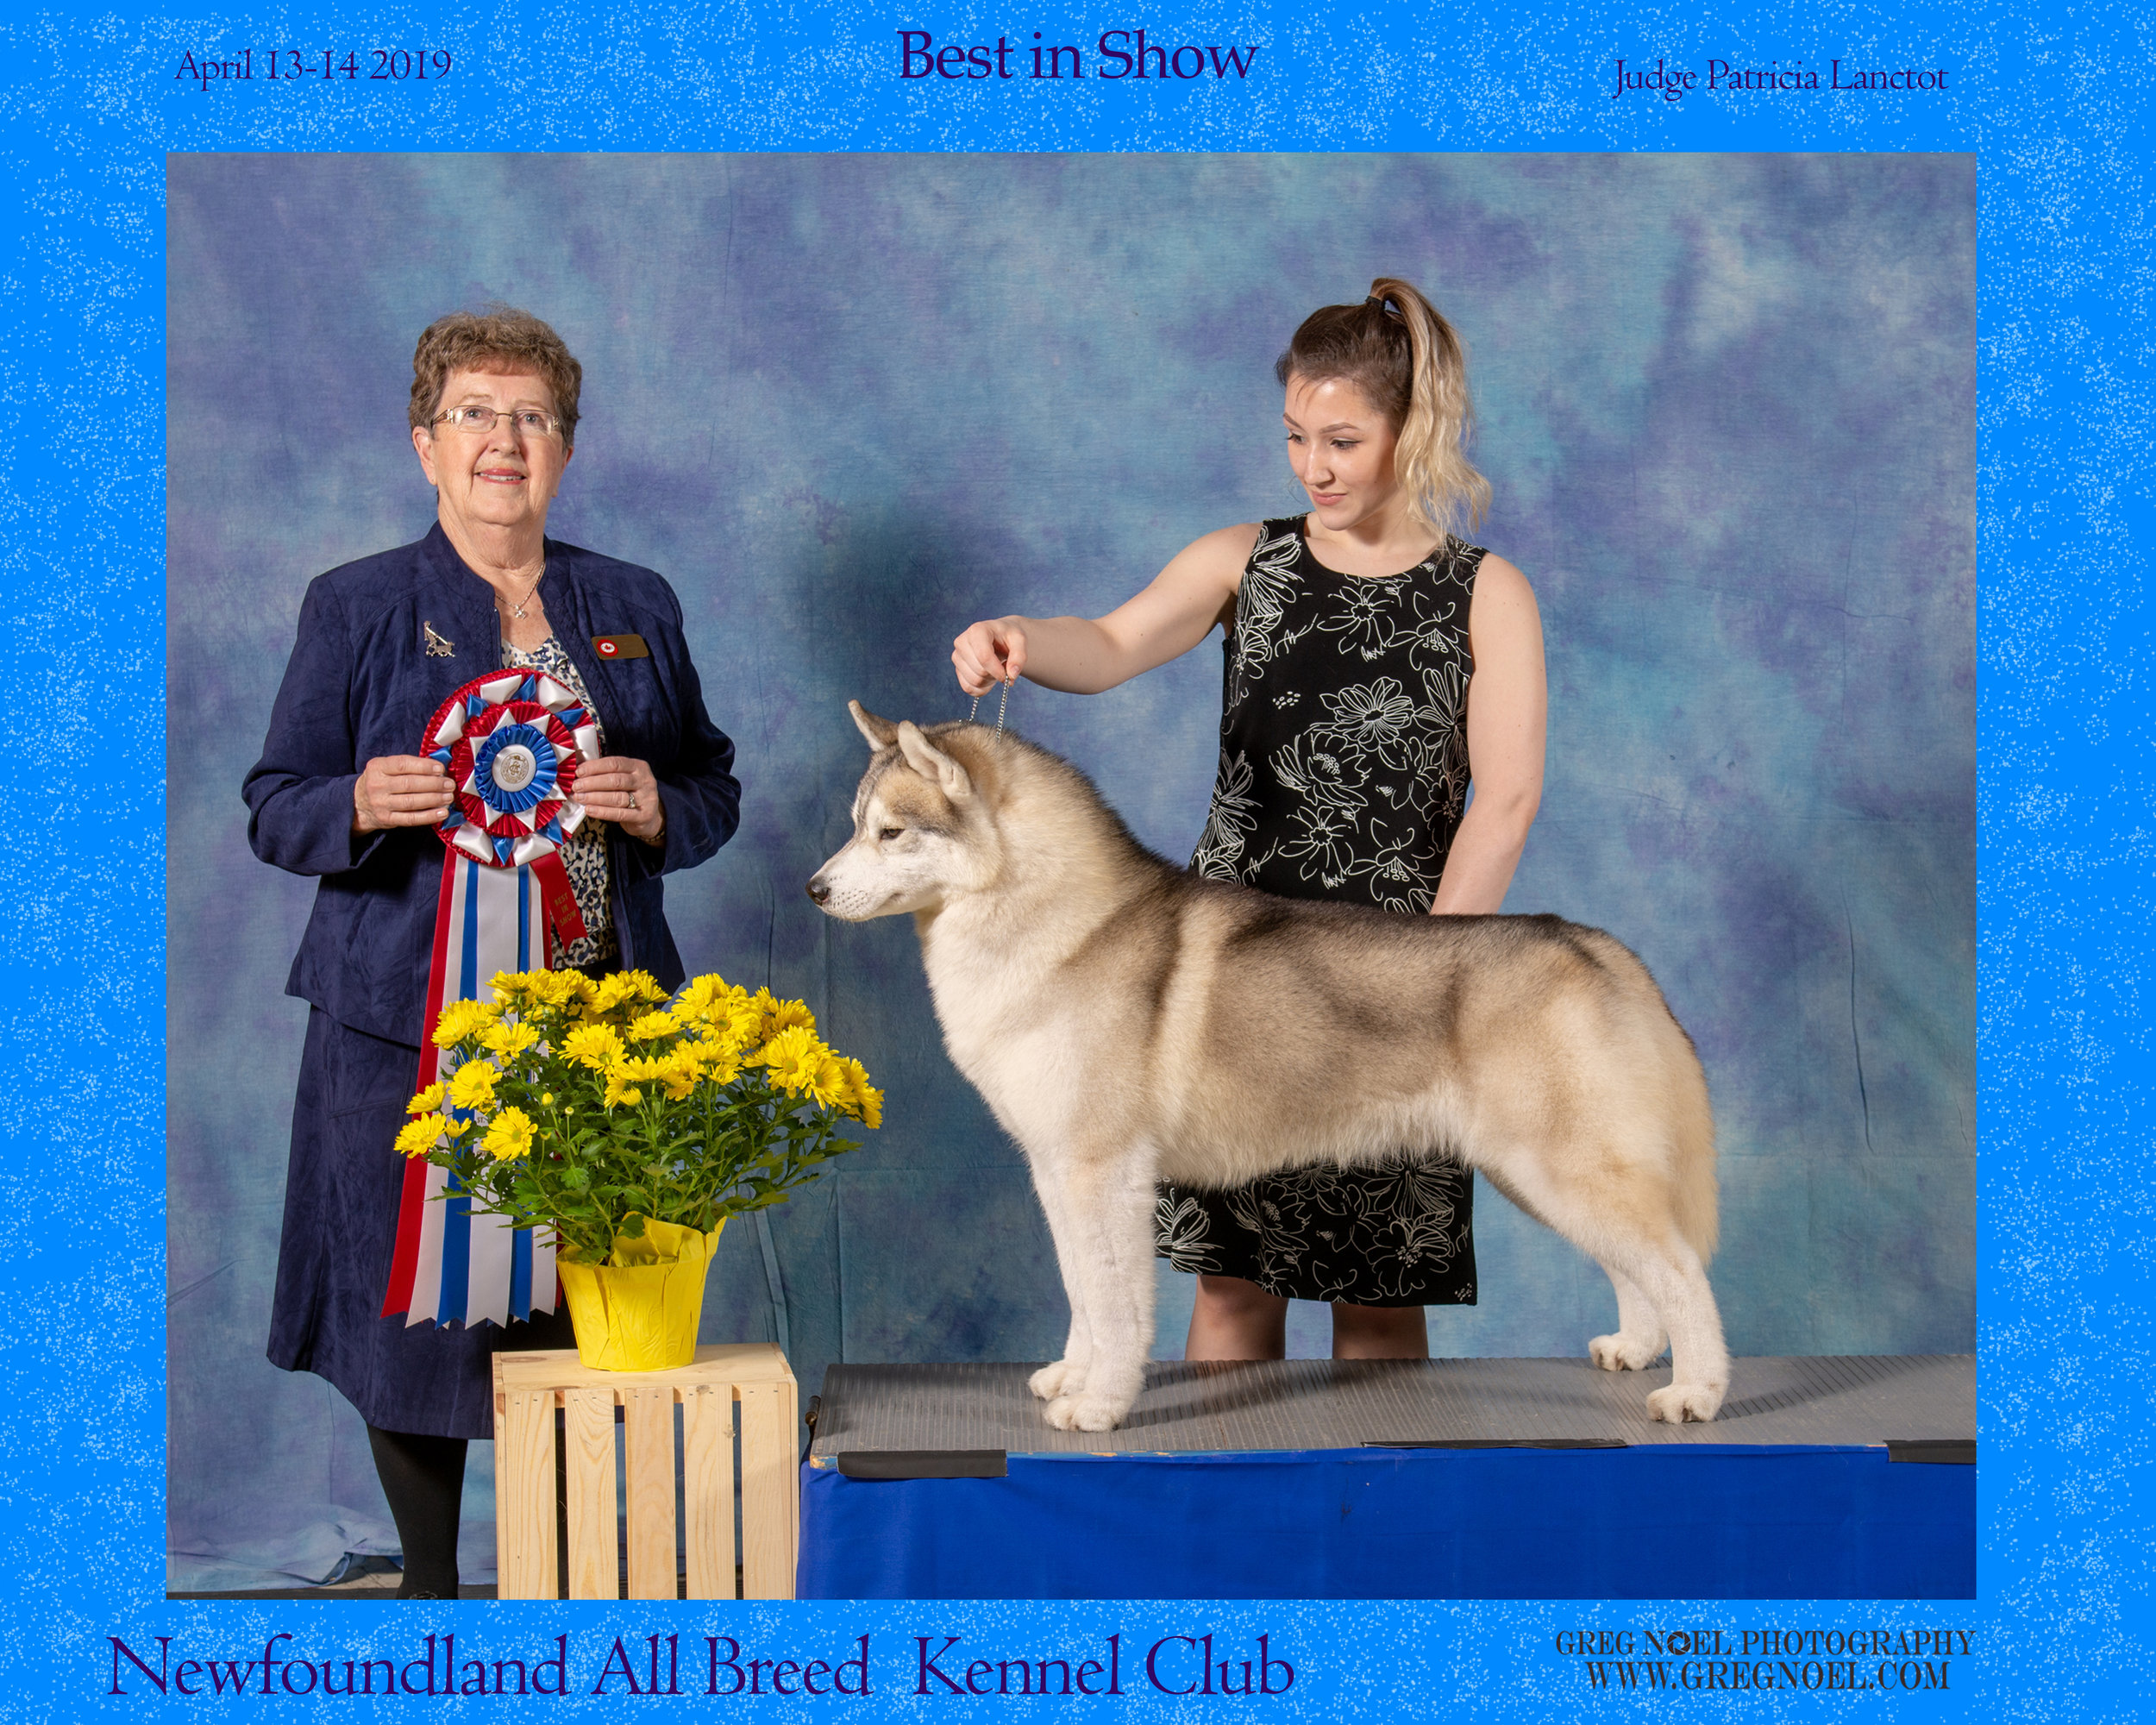 Newfoundland All Breed Kennel Club Dog ShowApril 2019 Booth Photos - Personal use digital downloads $40 each or free with valid coupon codeCommercial Licence for breeders/businesses/advertising $60 per imagePrints also available